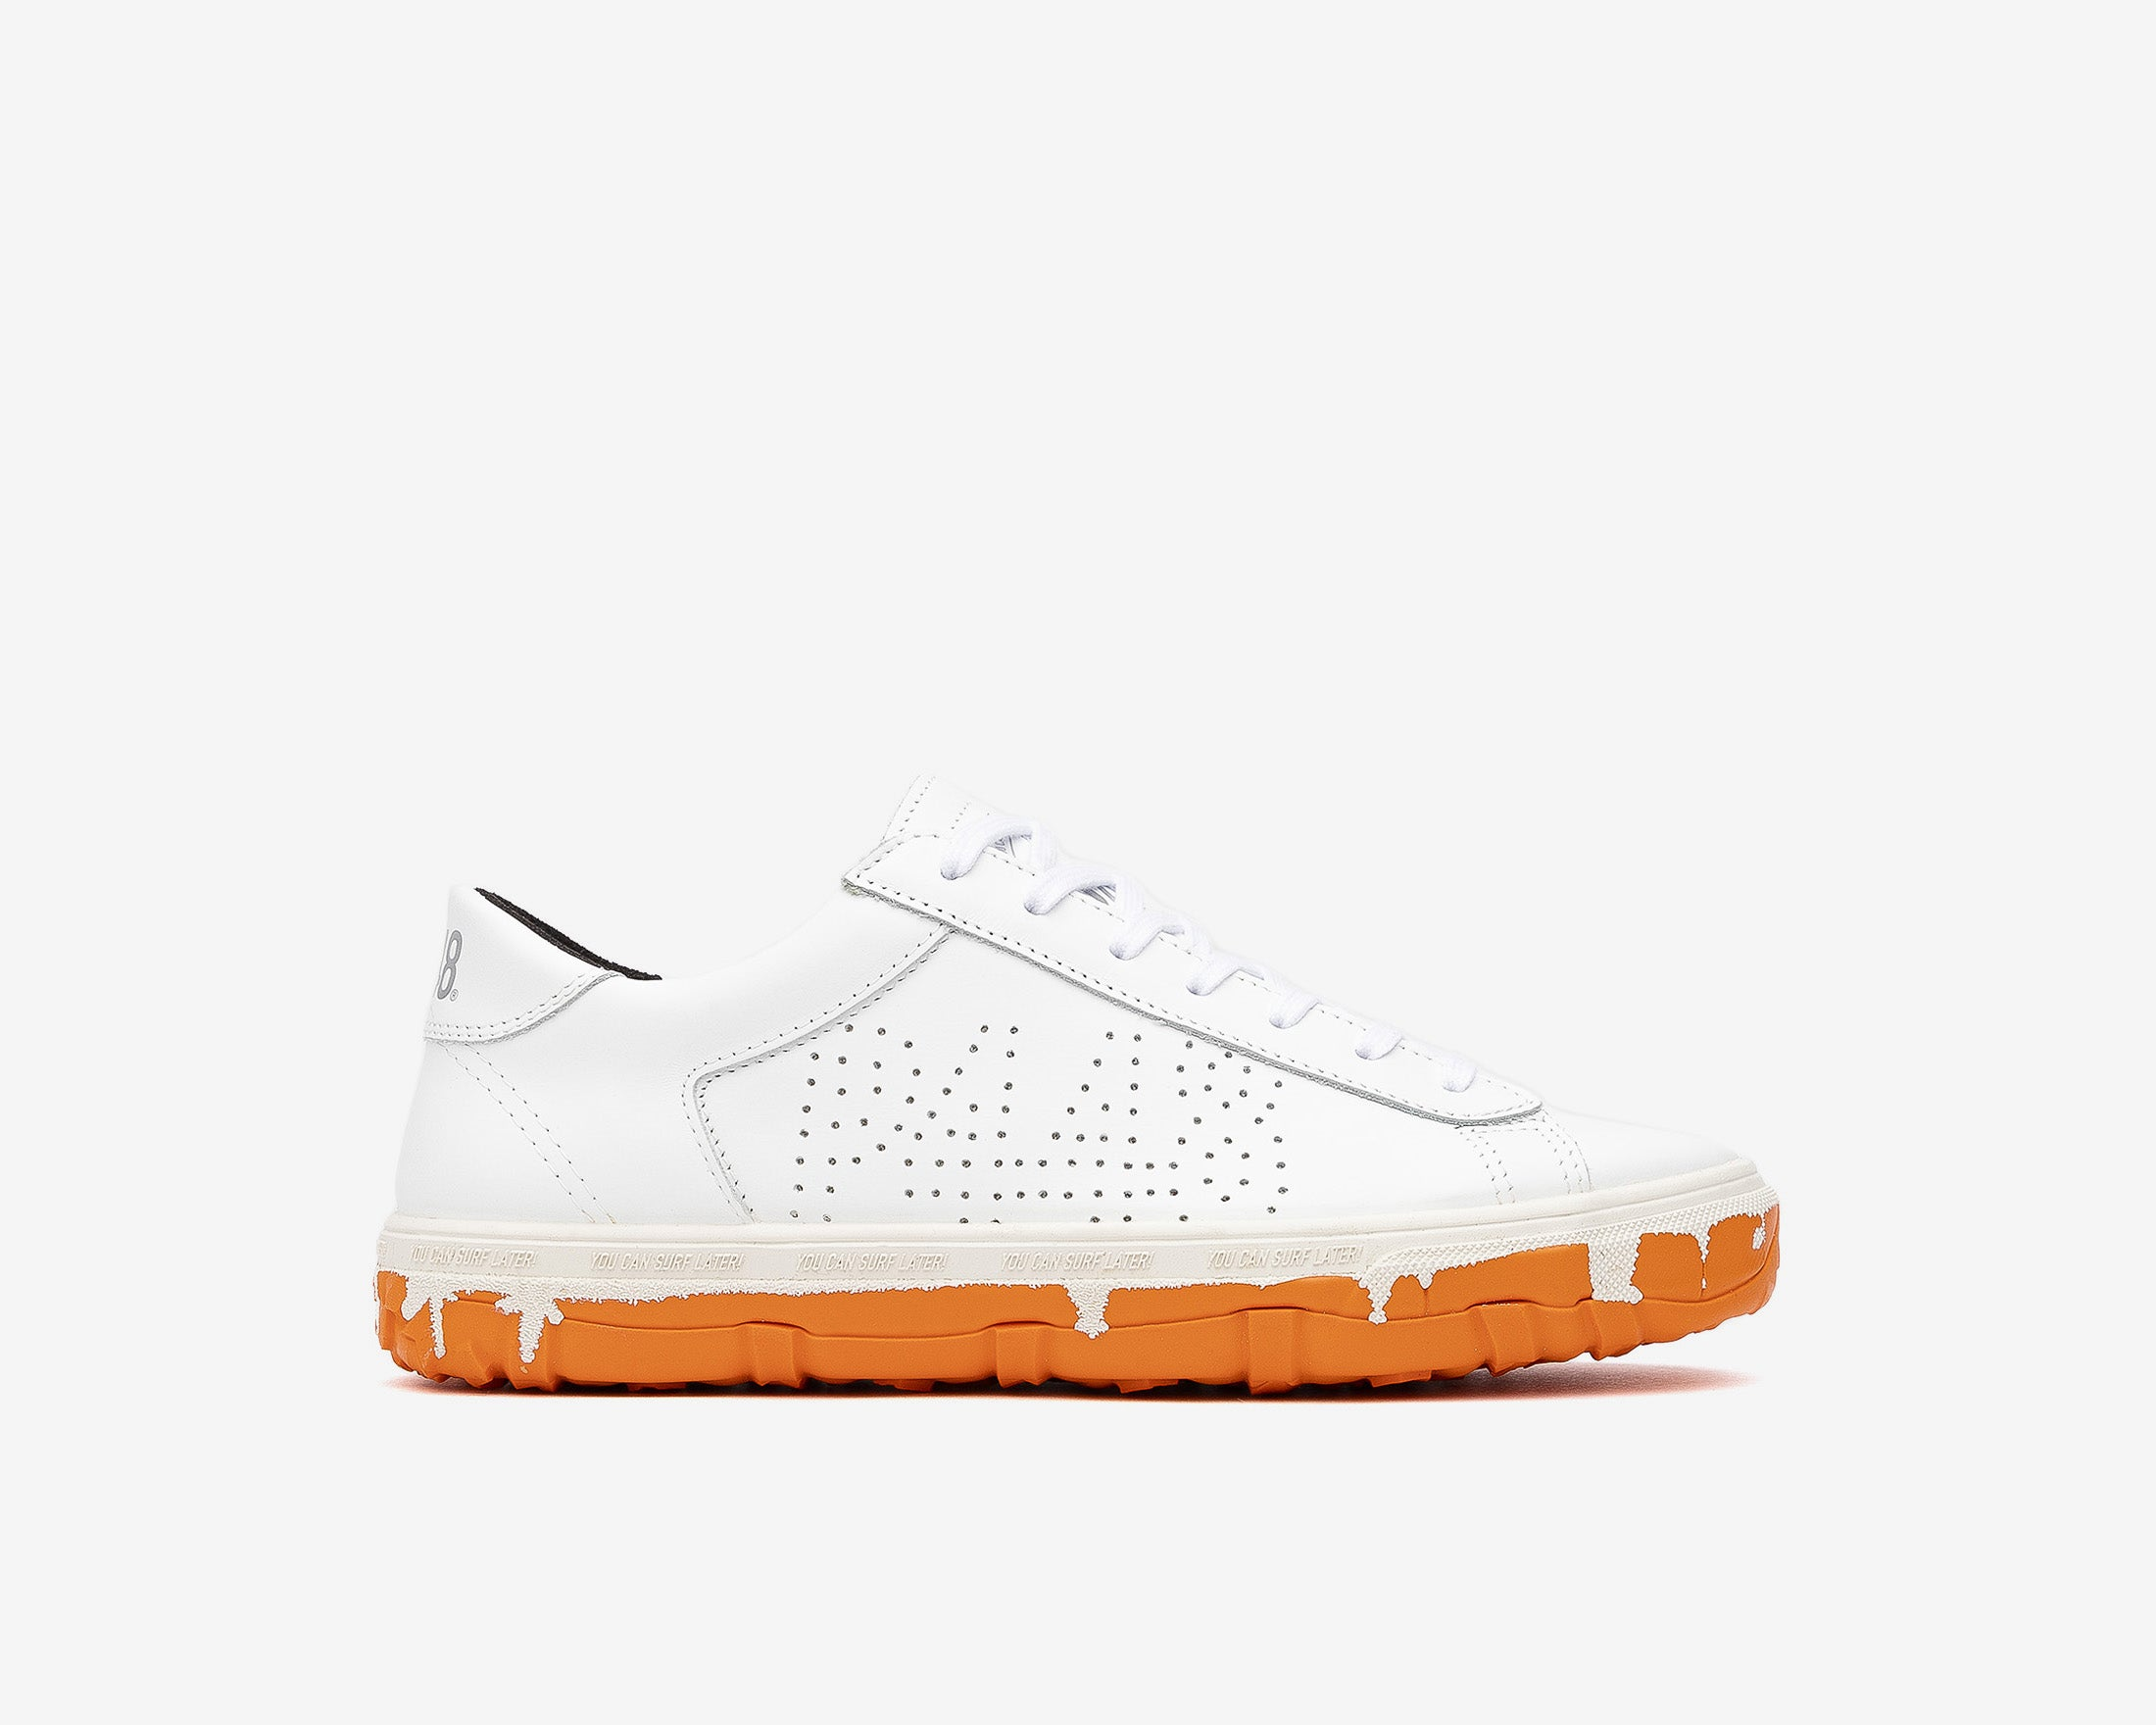 Y.C.S.L. Vibram Low-Top Sneaker in White/Orange - Profile